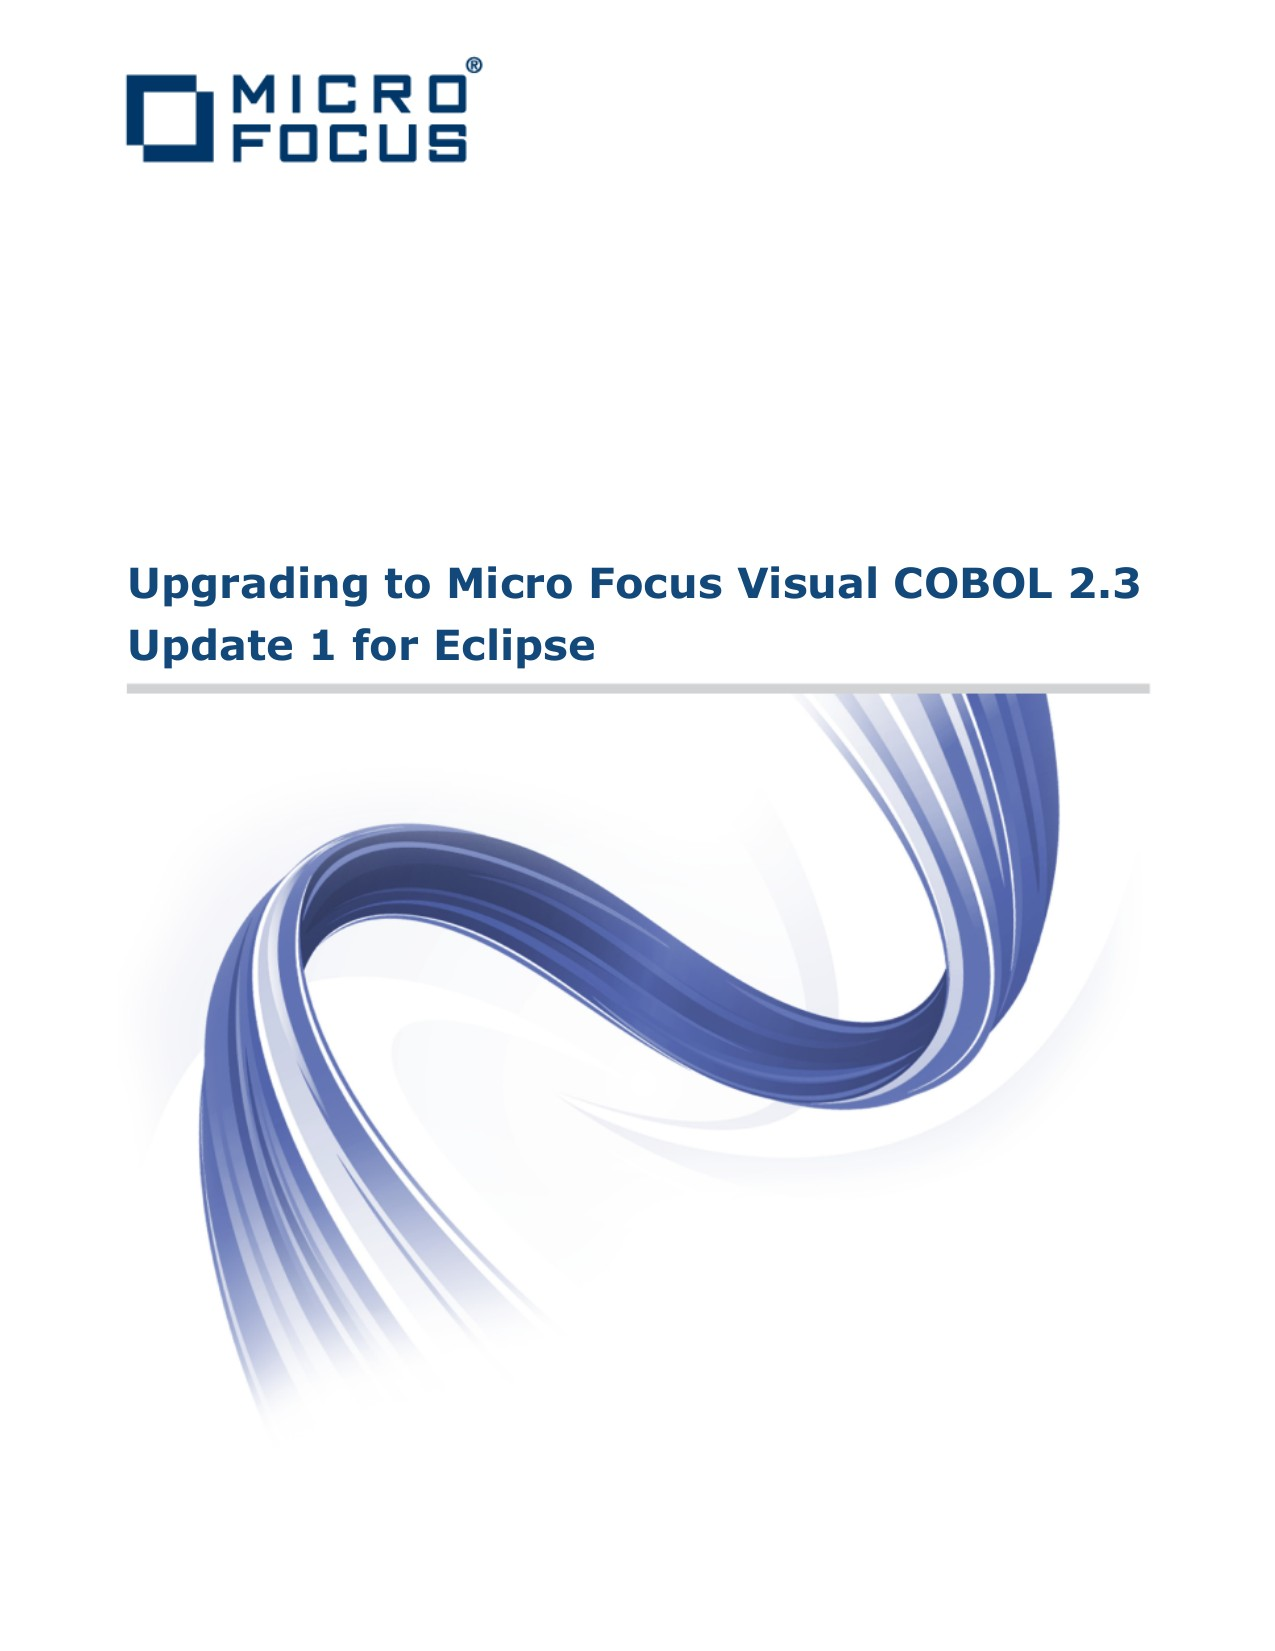 Upgrading to Visual COBOL for Eclipse